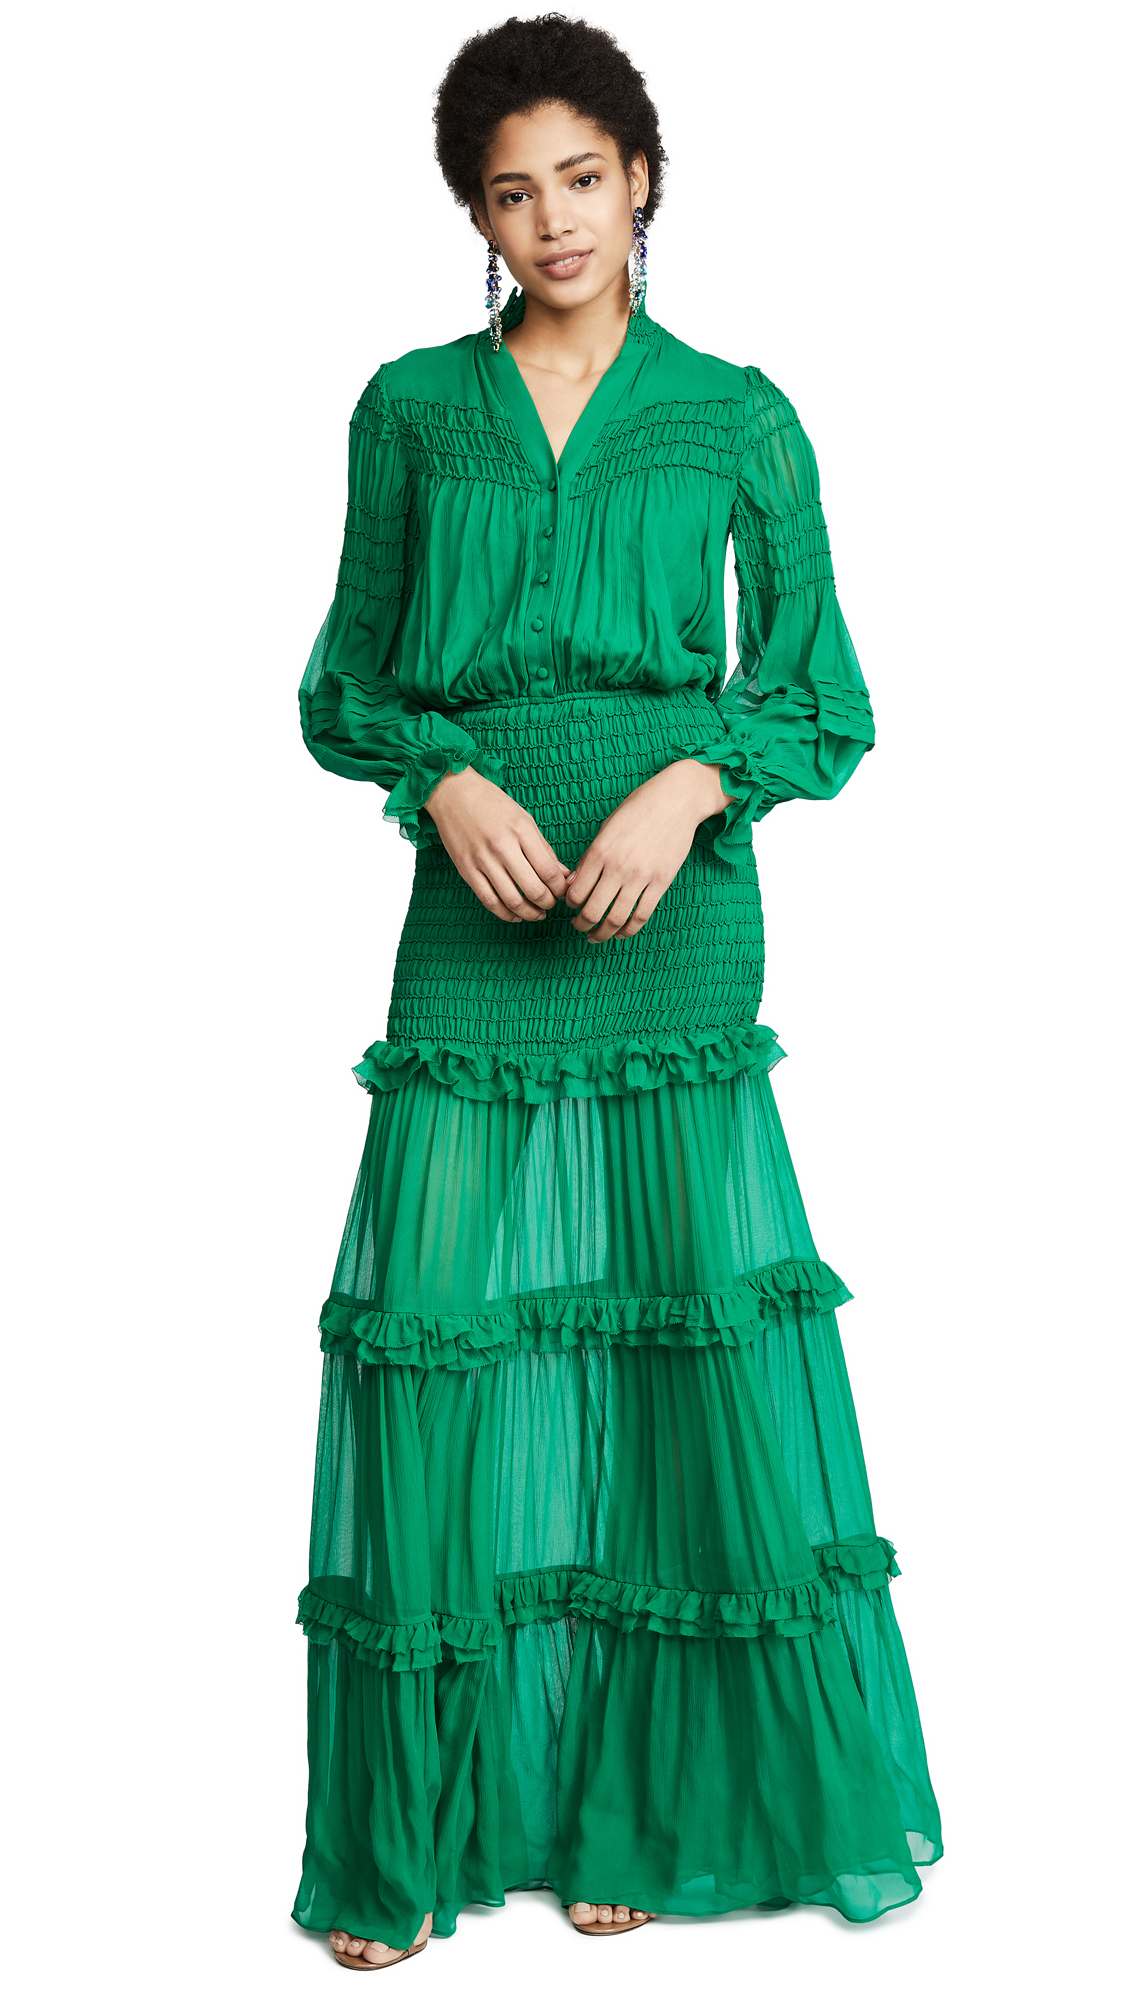 Sinclair Smocked Ruffle Button-Front Dress in Green